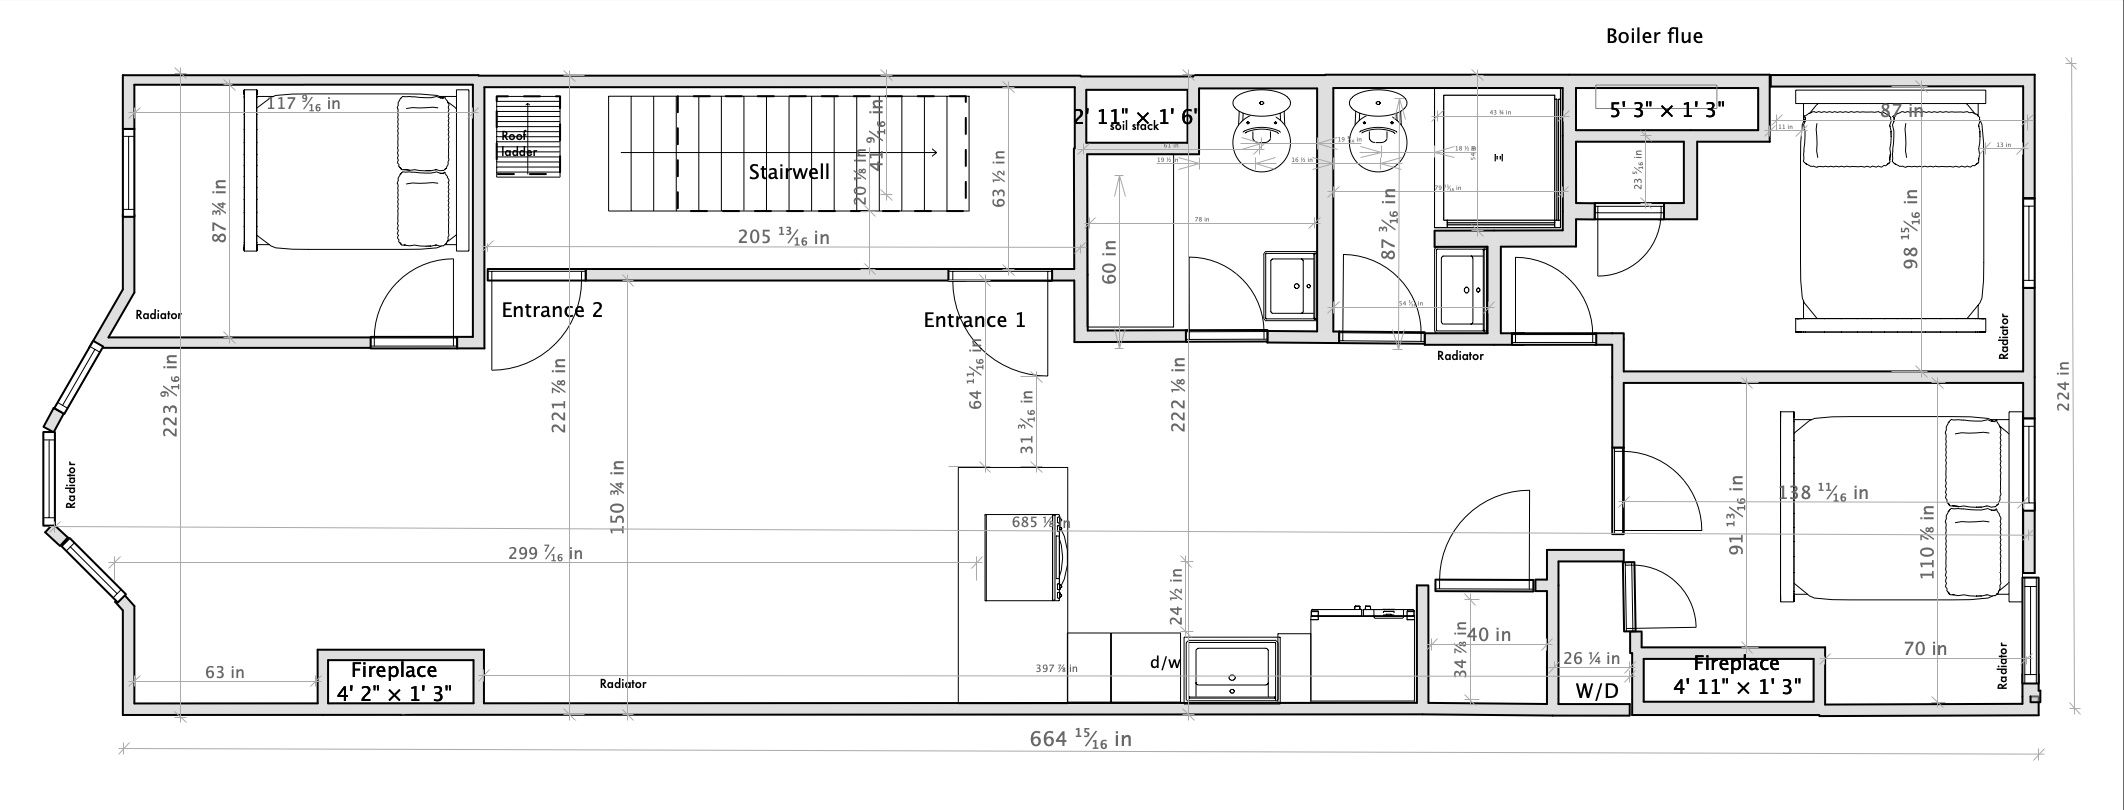 Bathroom layout question...-3rd-floor-layout-range-island.jpg